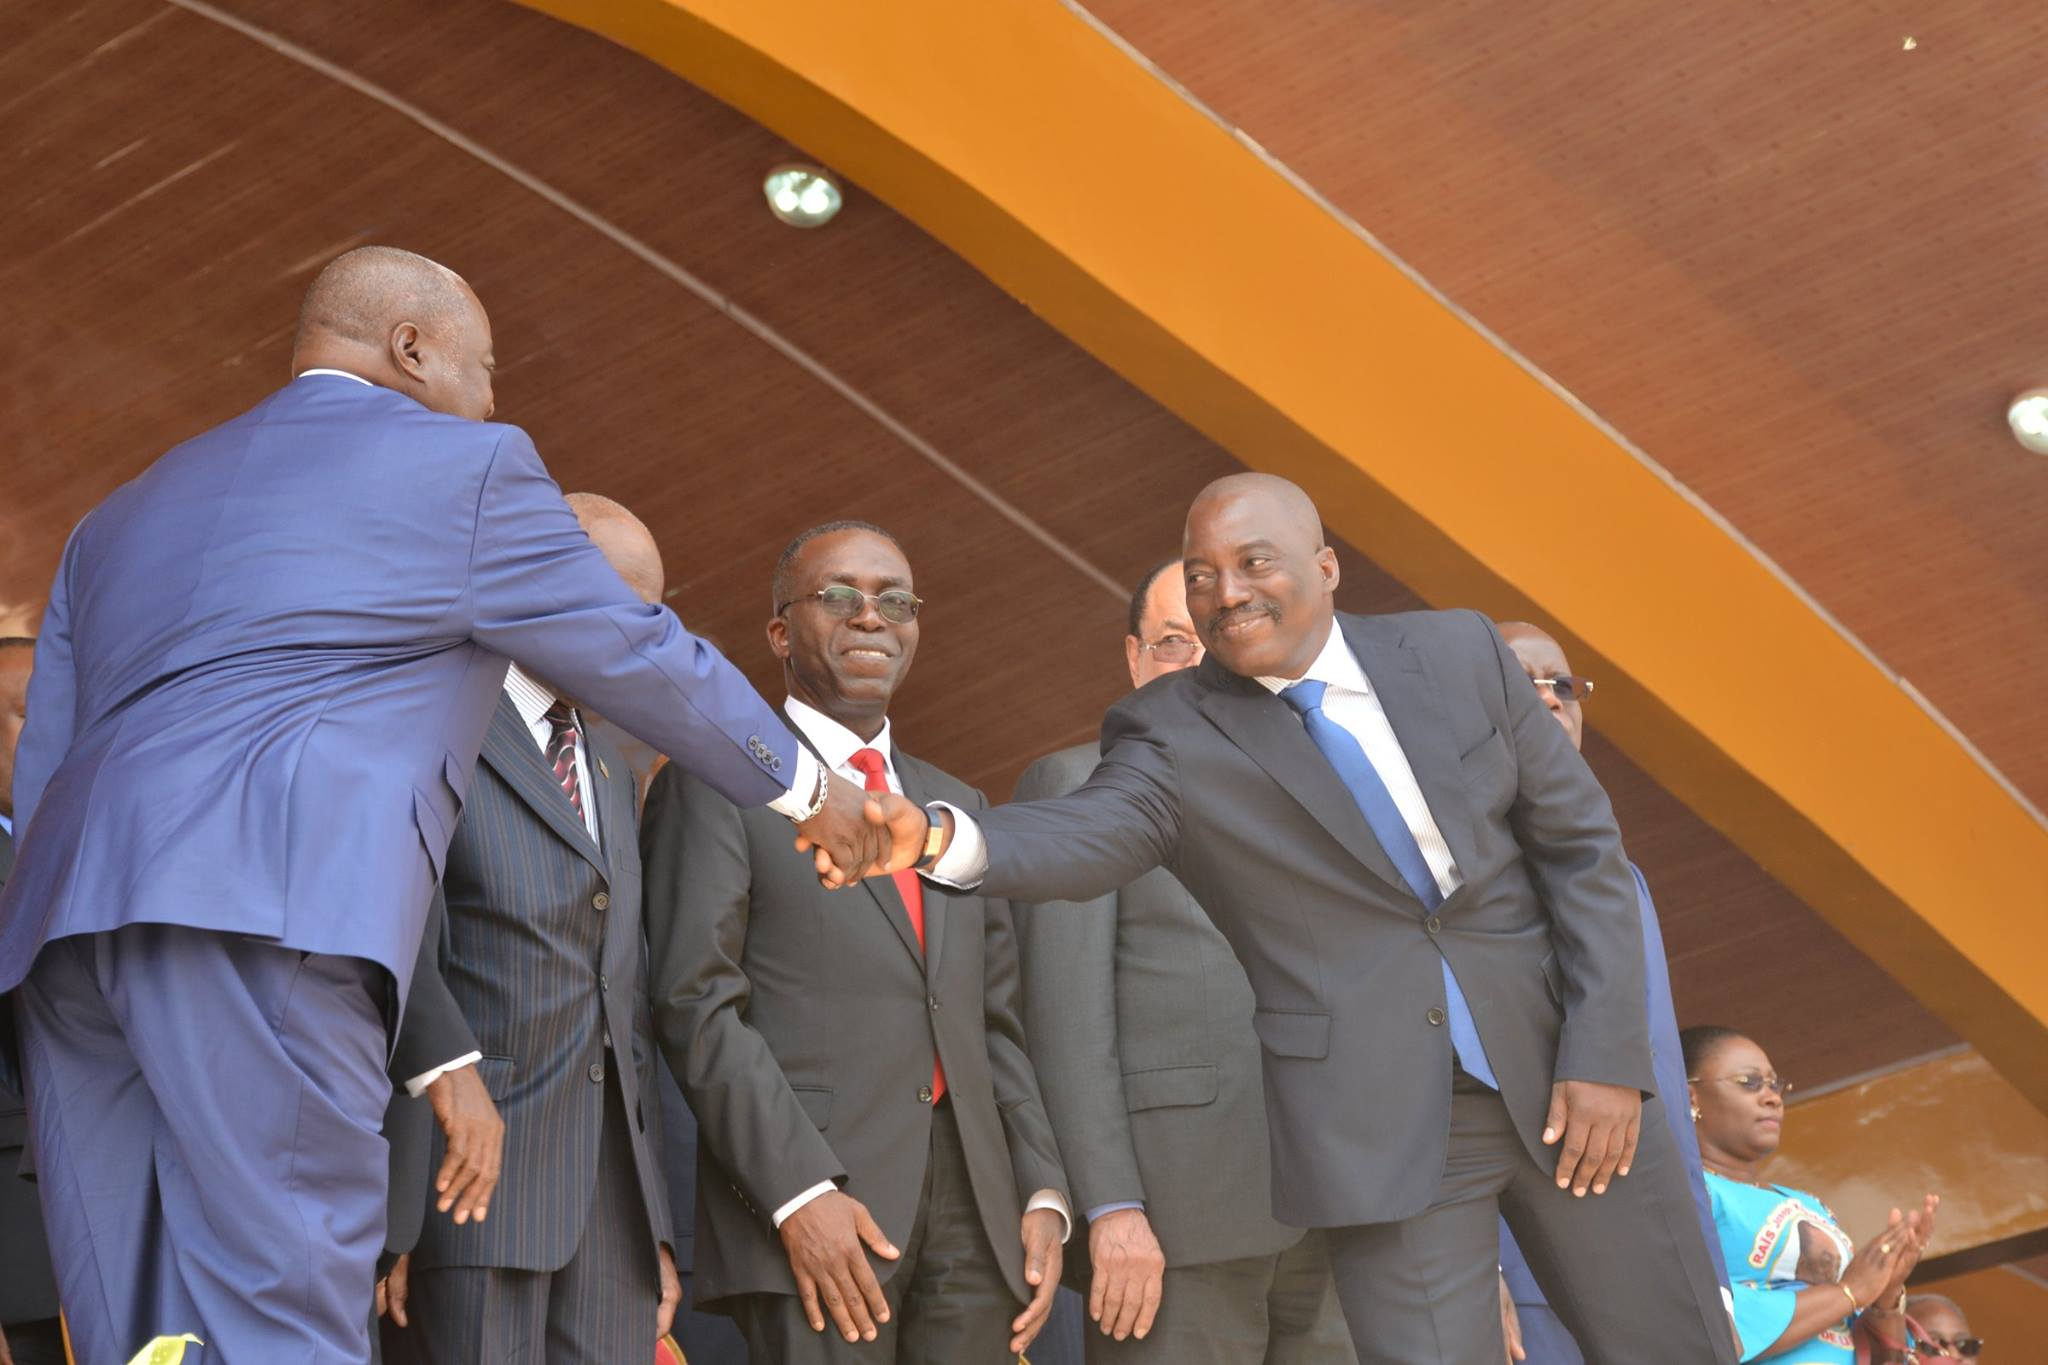 Congolese Public Administration